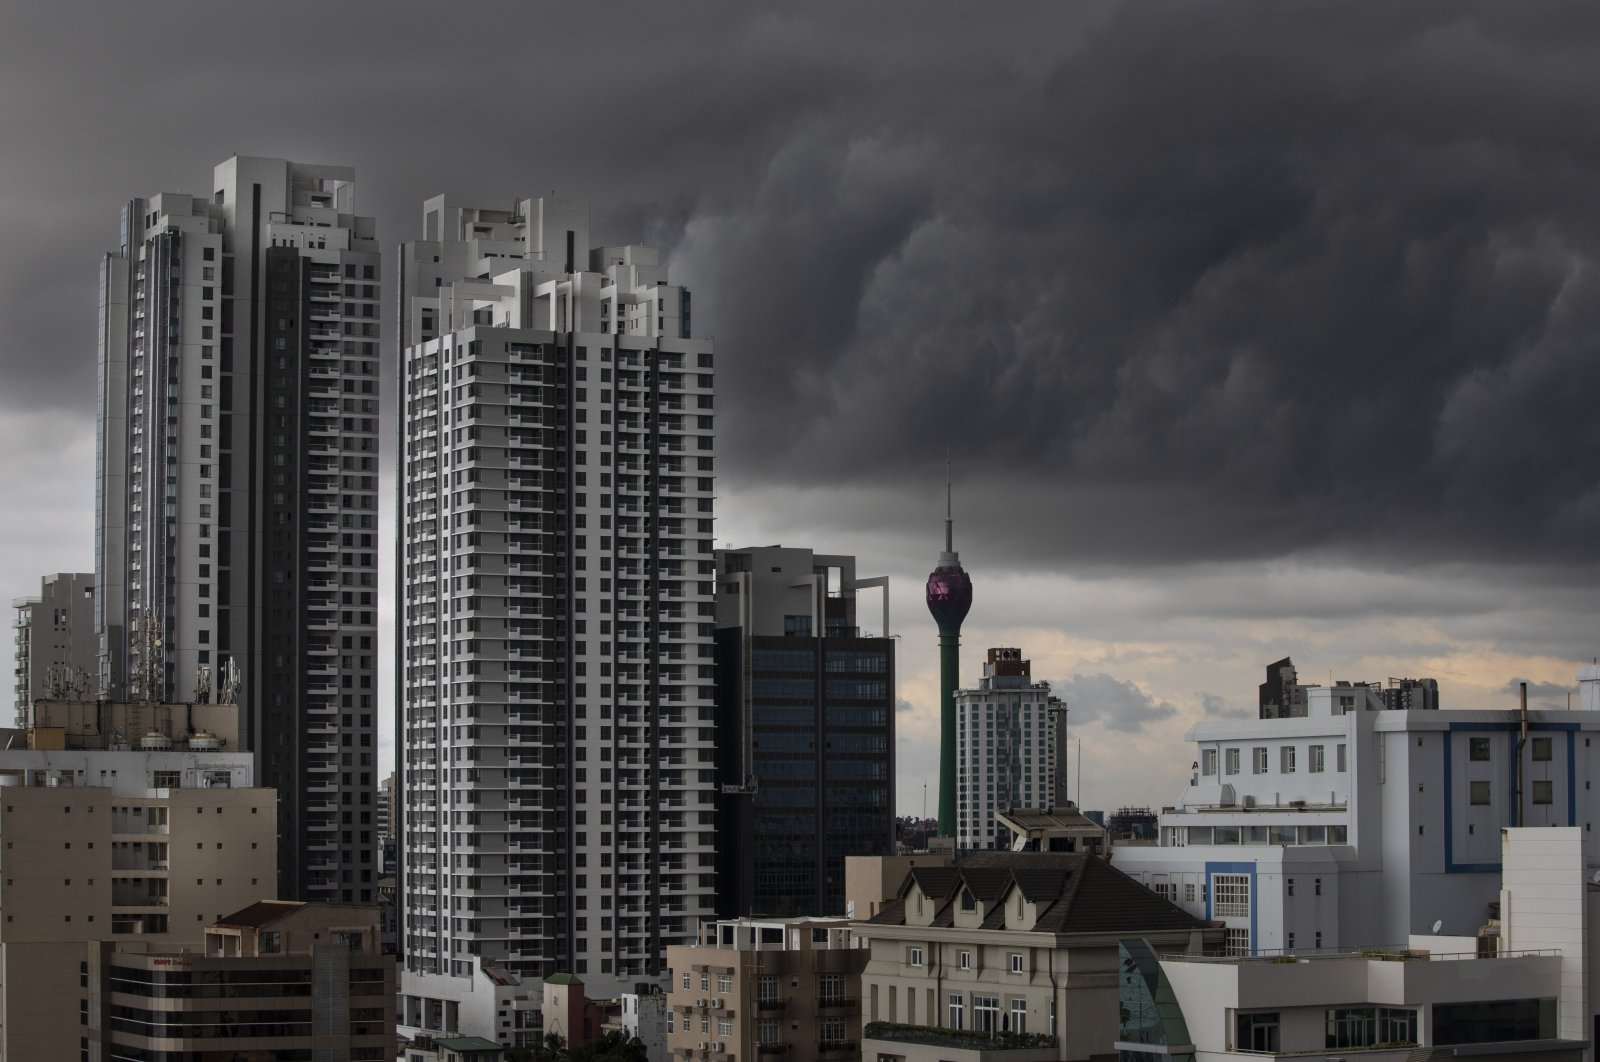 A storm is seen on the horizon against the skyline of Colombo, Sri Lanka, Nov. 16, 2019. (Getty Images)